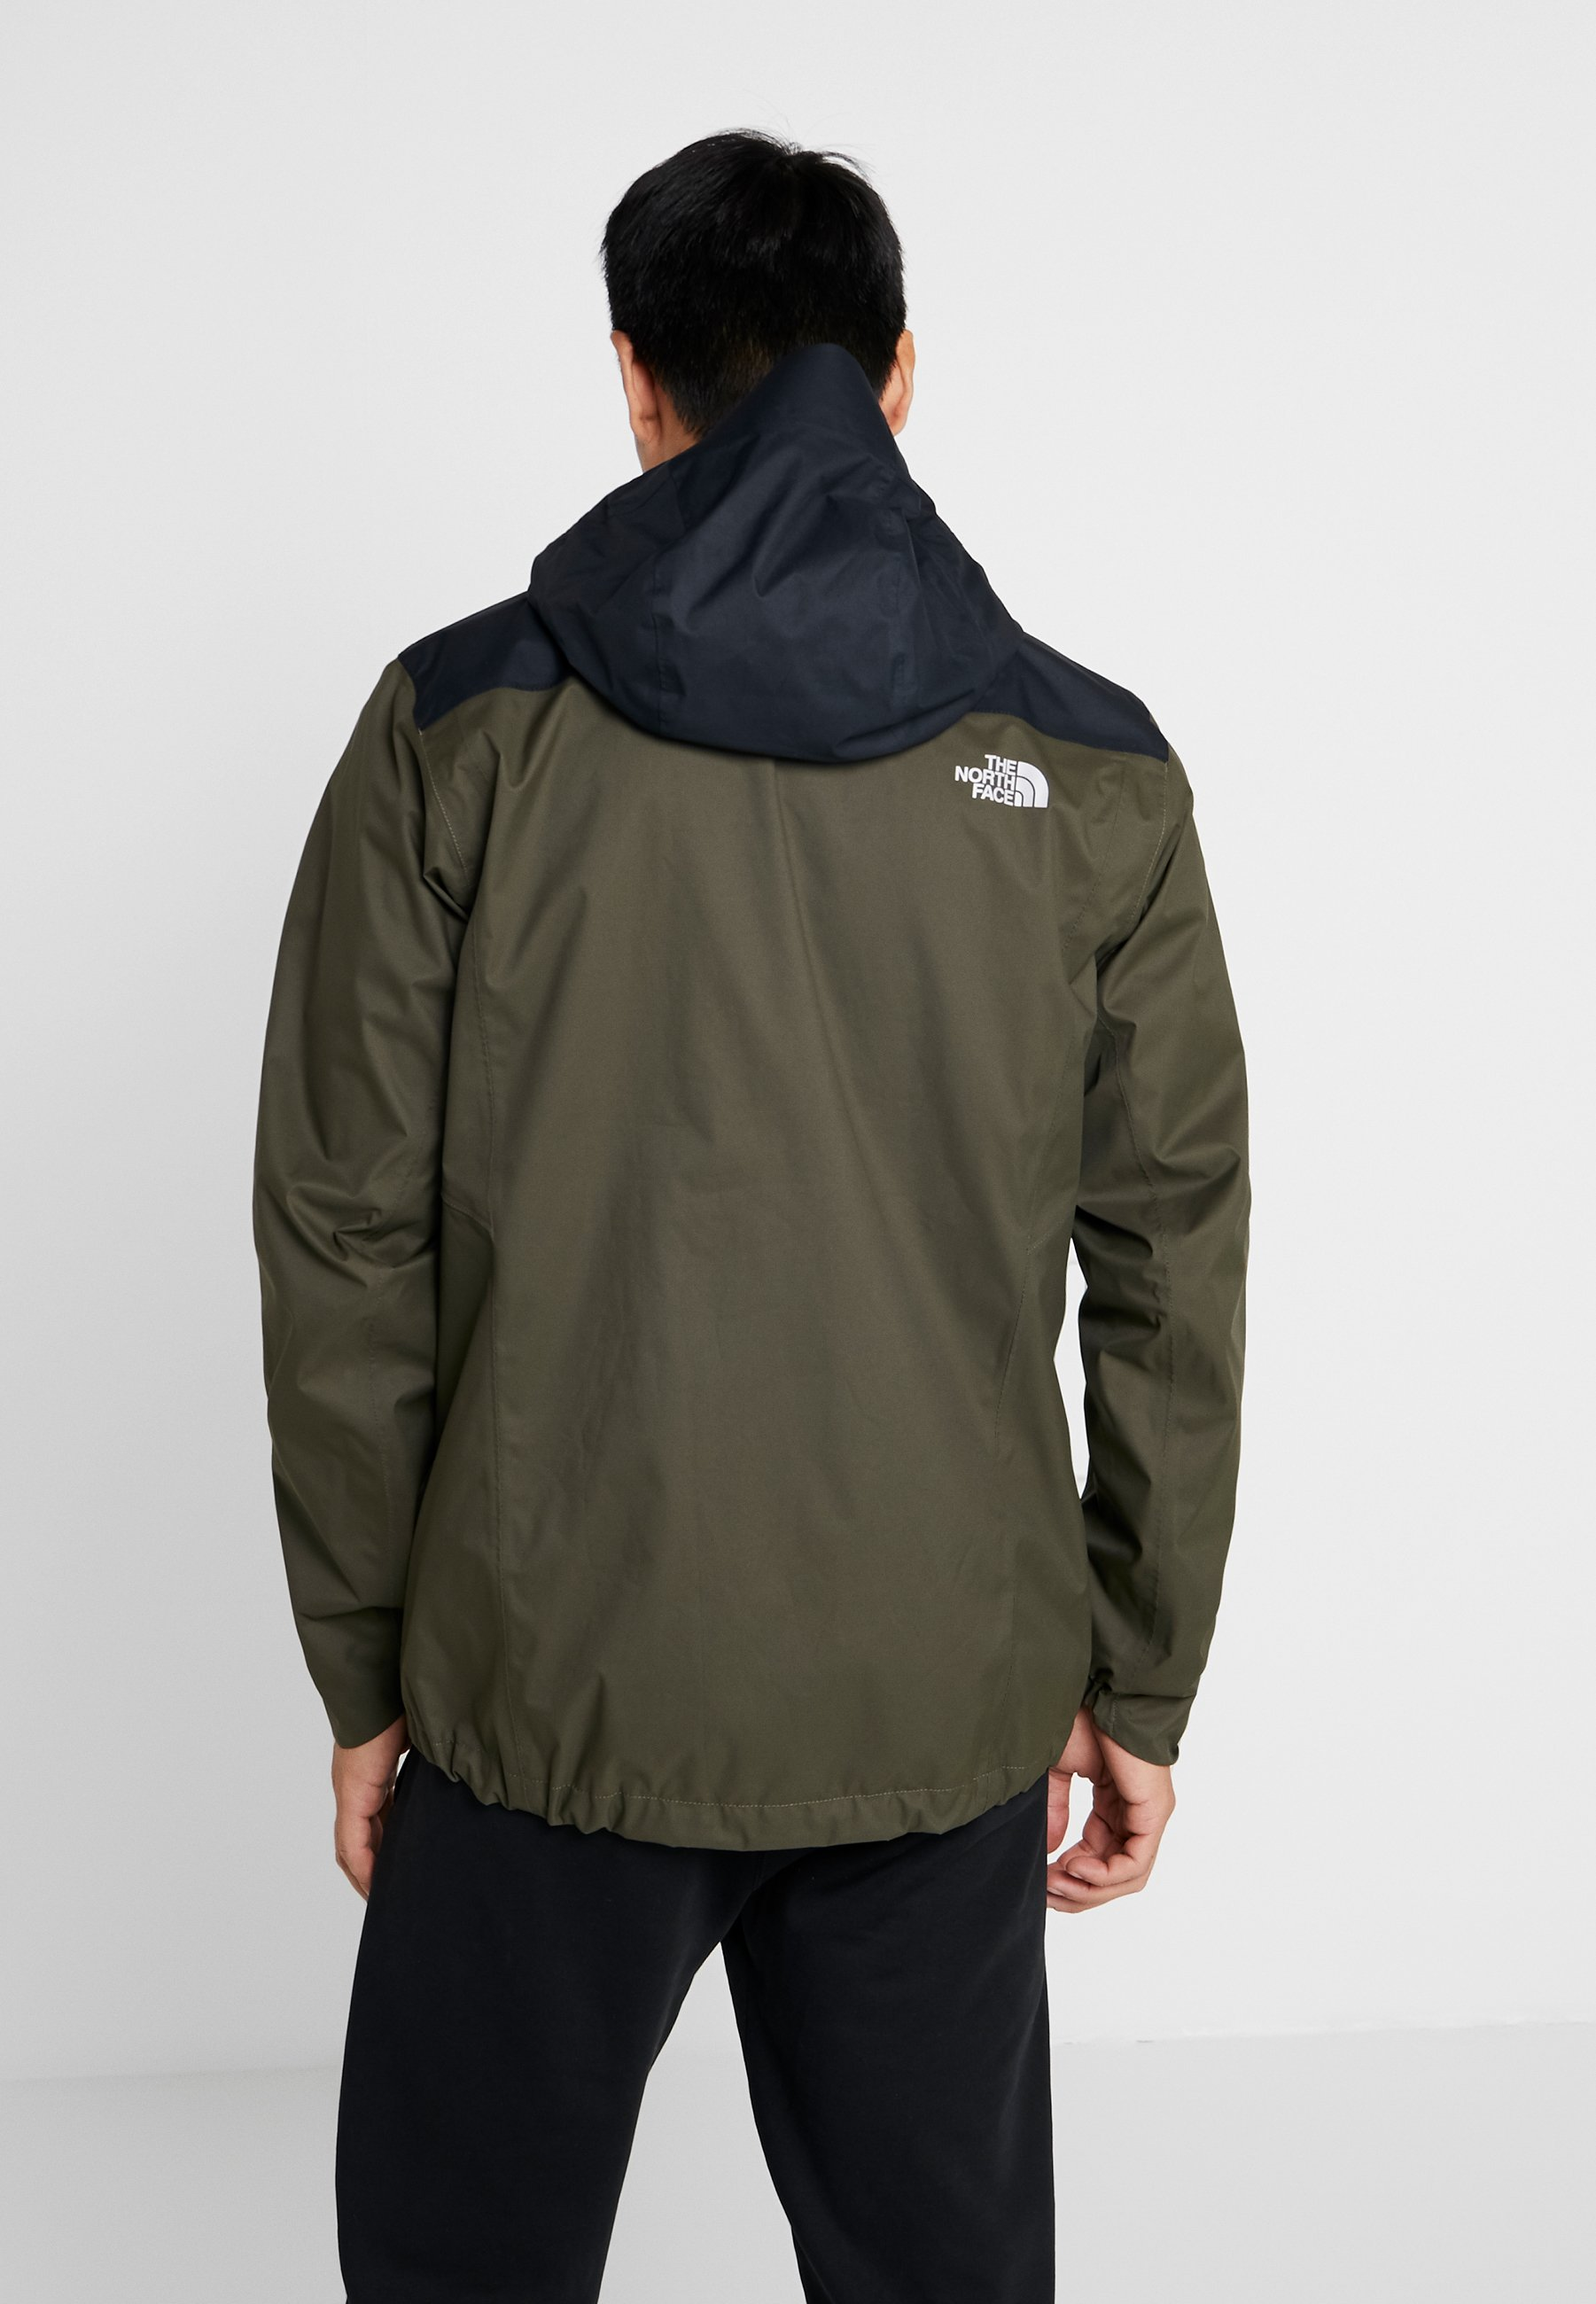 Taupe The Quest In North Face JacketVeste Green black Hardshell Zip New 4R35jALq